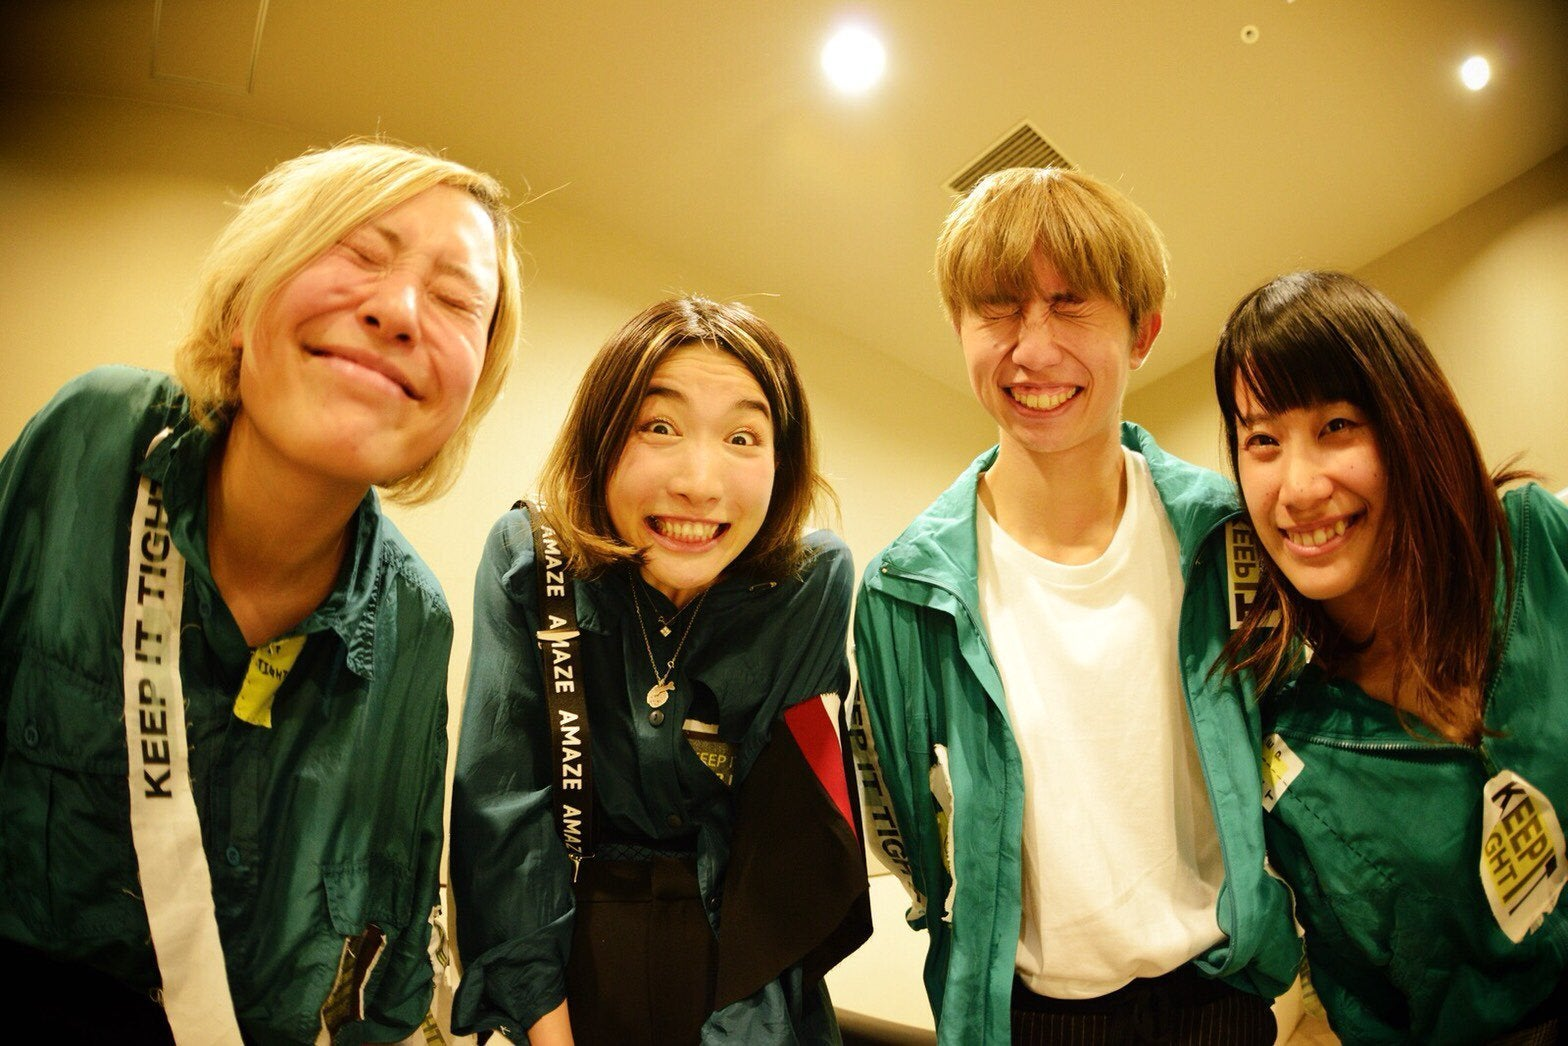 Tricot band members age